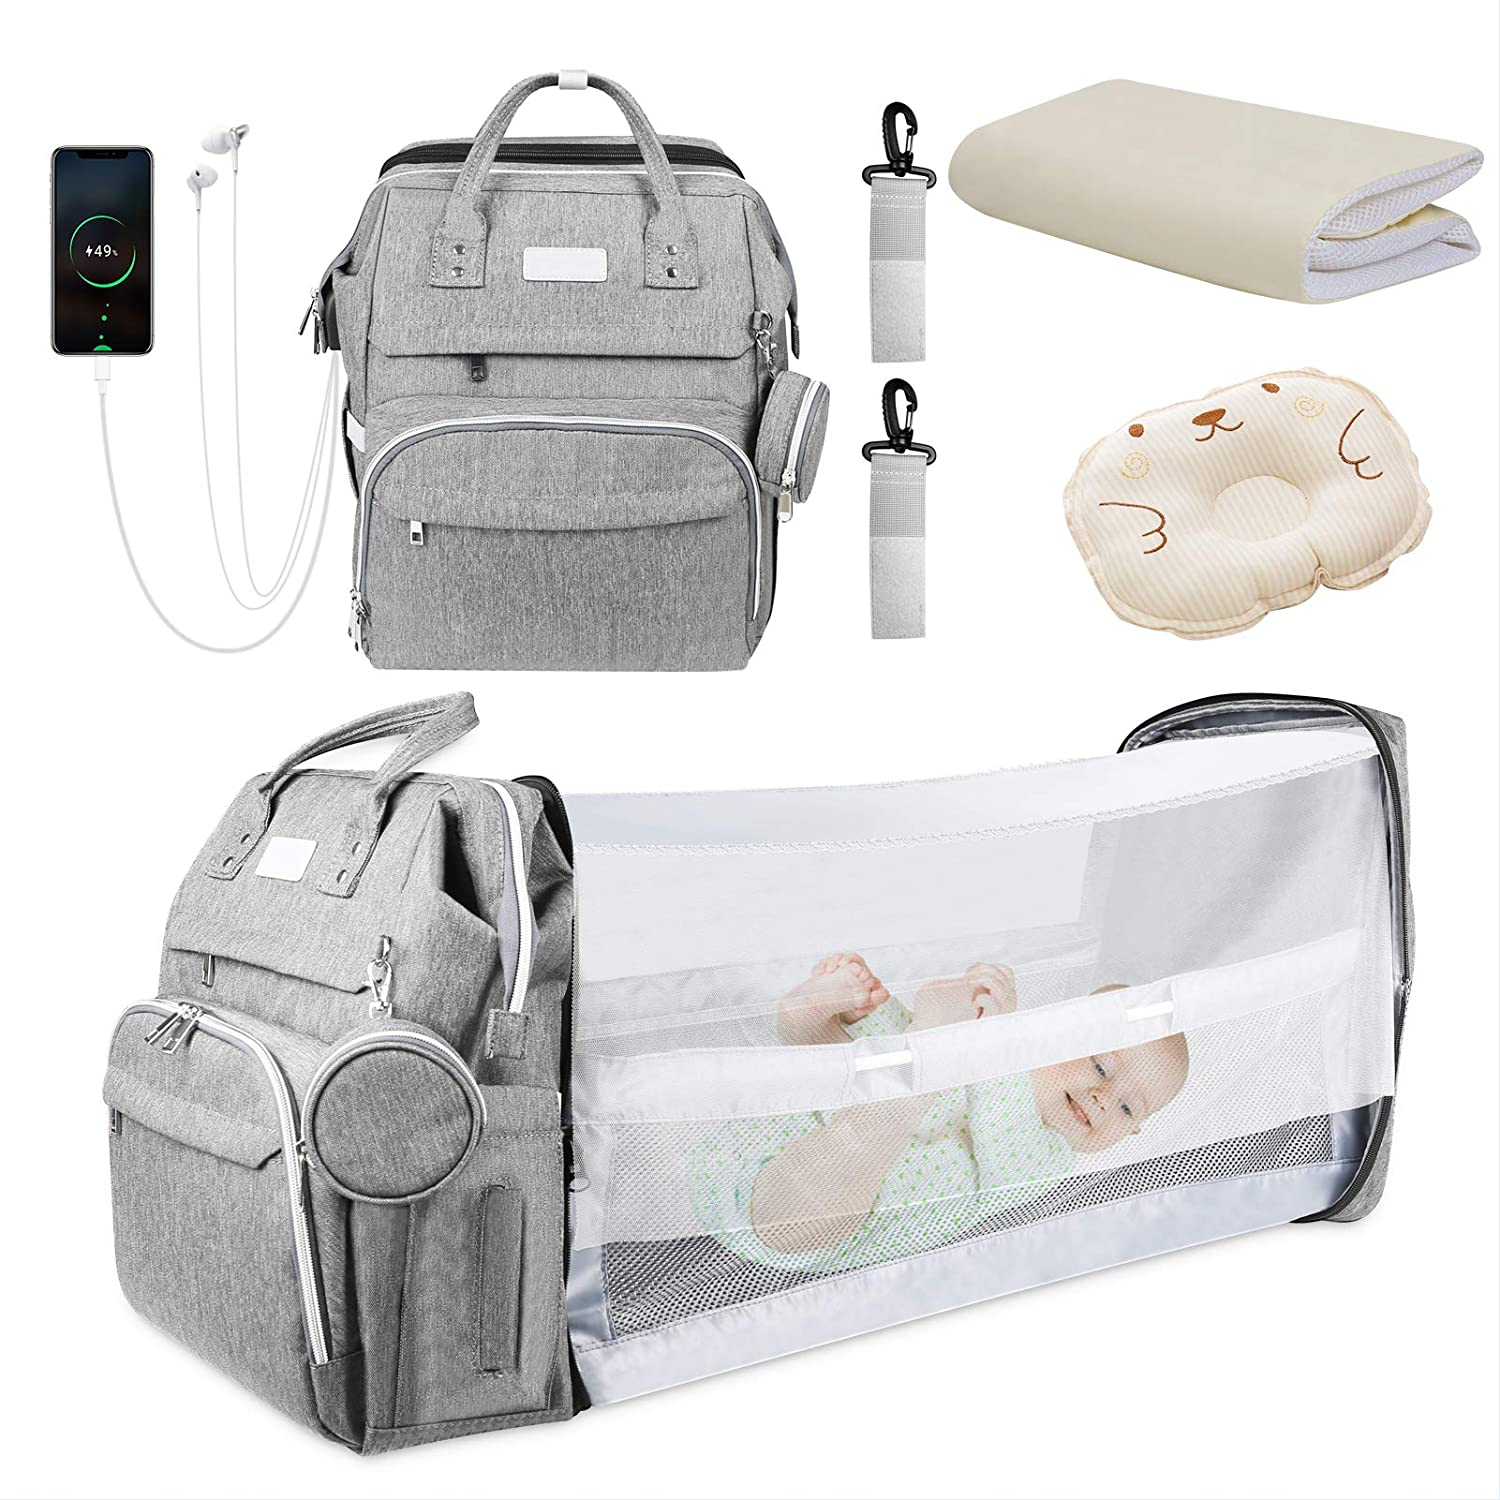 Baby Diaper Bag Backpack, Multifunction Travel Diaper Changing Station, Large Capacity Portable Crib Bakcpack with Baby Pillow,Waterproof Changing Pad,USB Charging Port,Pacifier Case and Sunshade